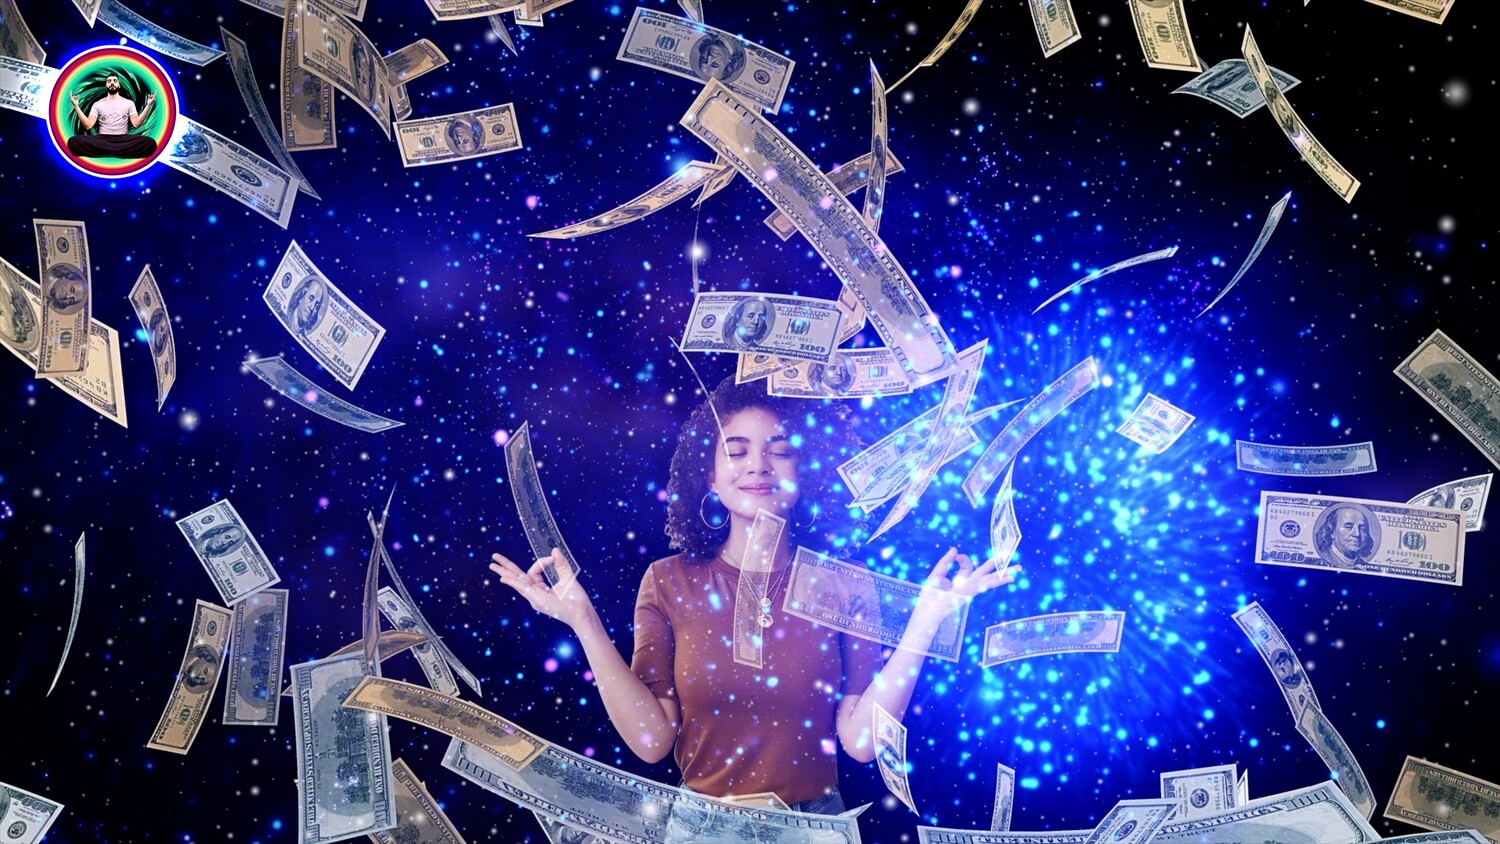 1 Million Dollars Manifestation 🤑 Become a Millionaire 💰Law of Attraction Millionaire Affirmations